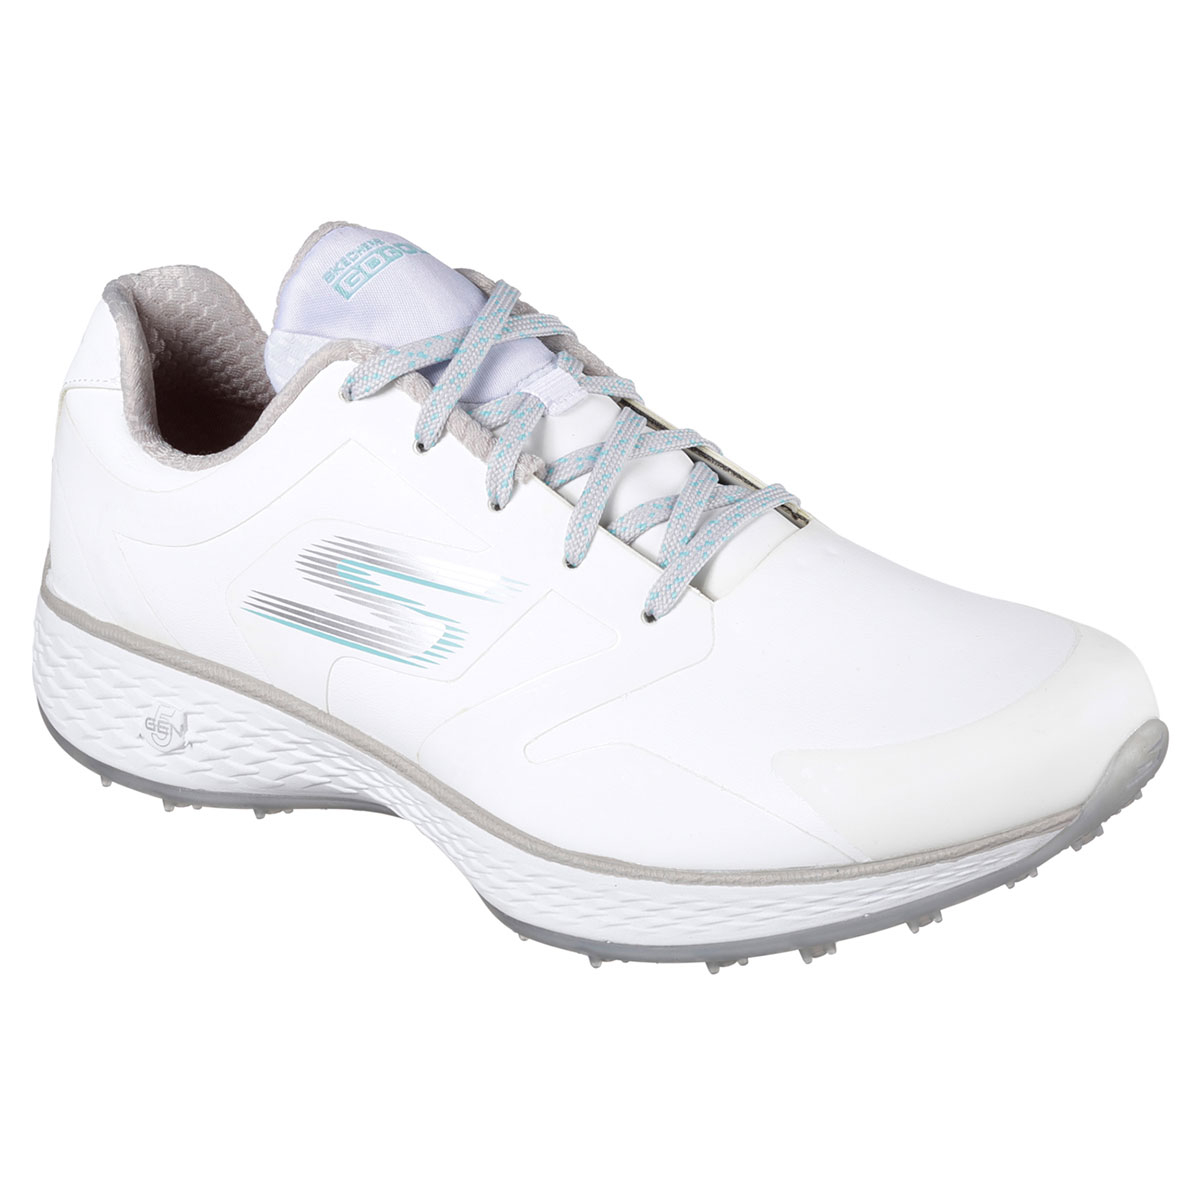 skechers shoes south africa